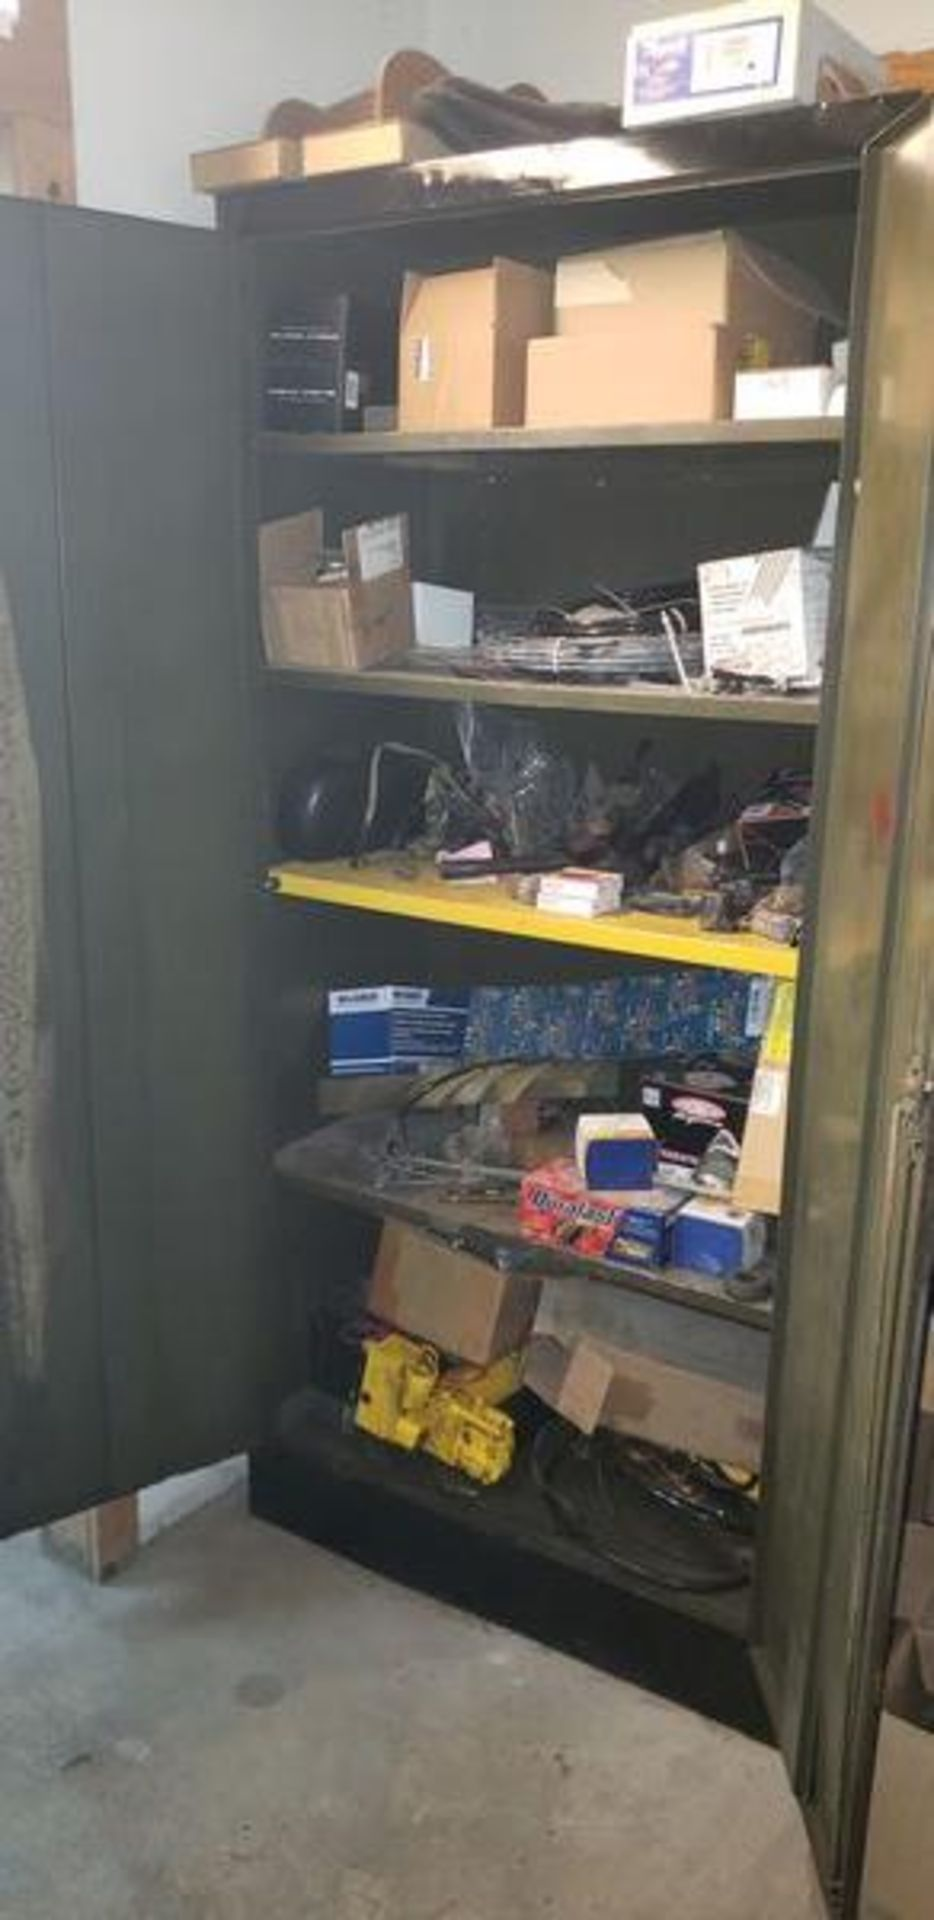 LOT OF S-10 AND PLOW PARTS WITH 2 DOOR METAL STORAGE CABINENT - Image 2 of 16